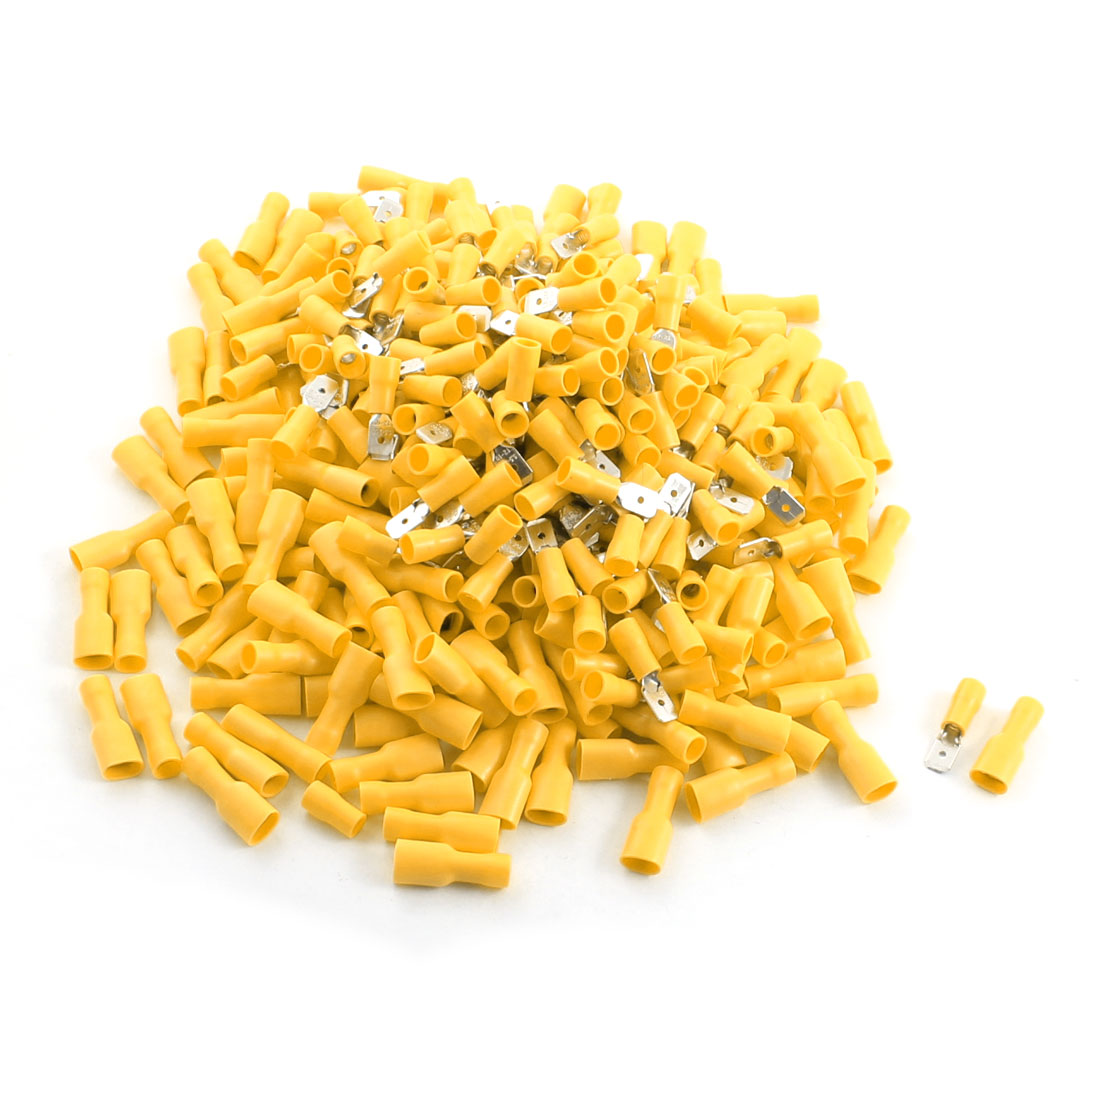 400Pcs Yellow Male Female Insulated Spade Crimp Terminals for AWG 12-10 Cable